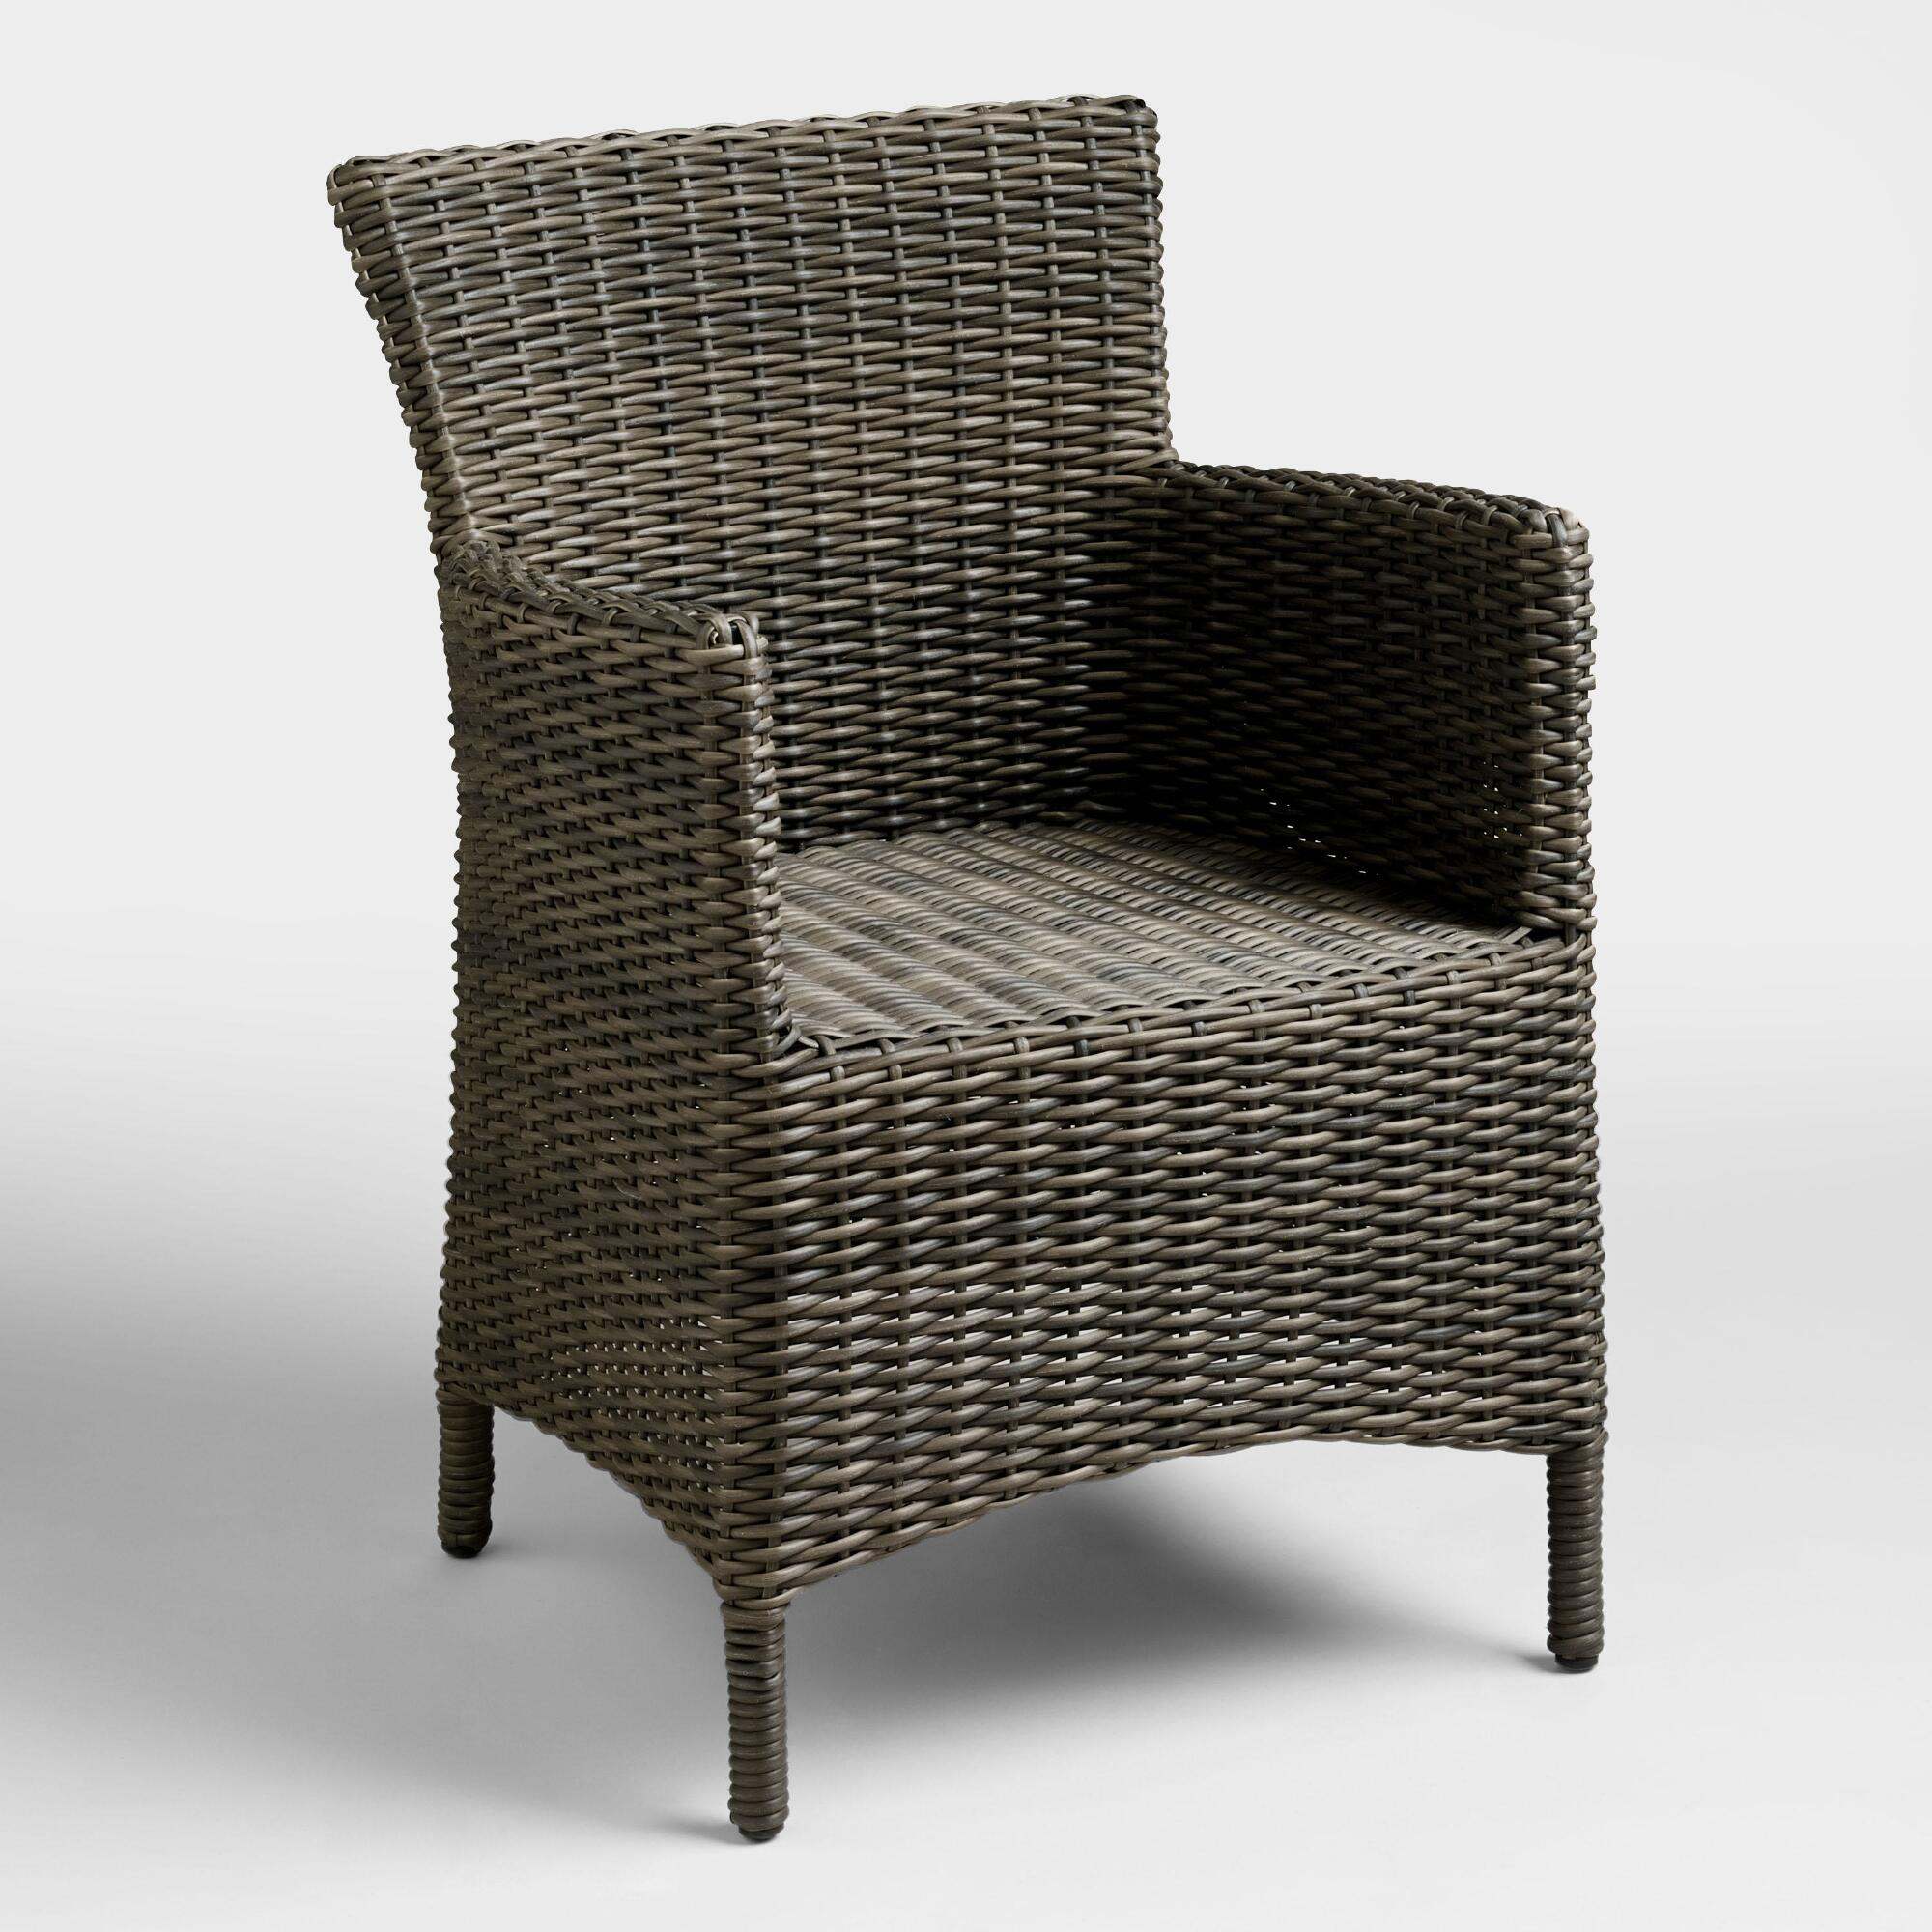 Gray All Weather Wicker Solano Armchair   World Market. Outdoor Resin Wicker Chairs Canada. Home Design Ideas